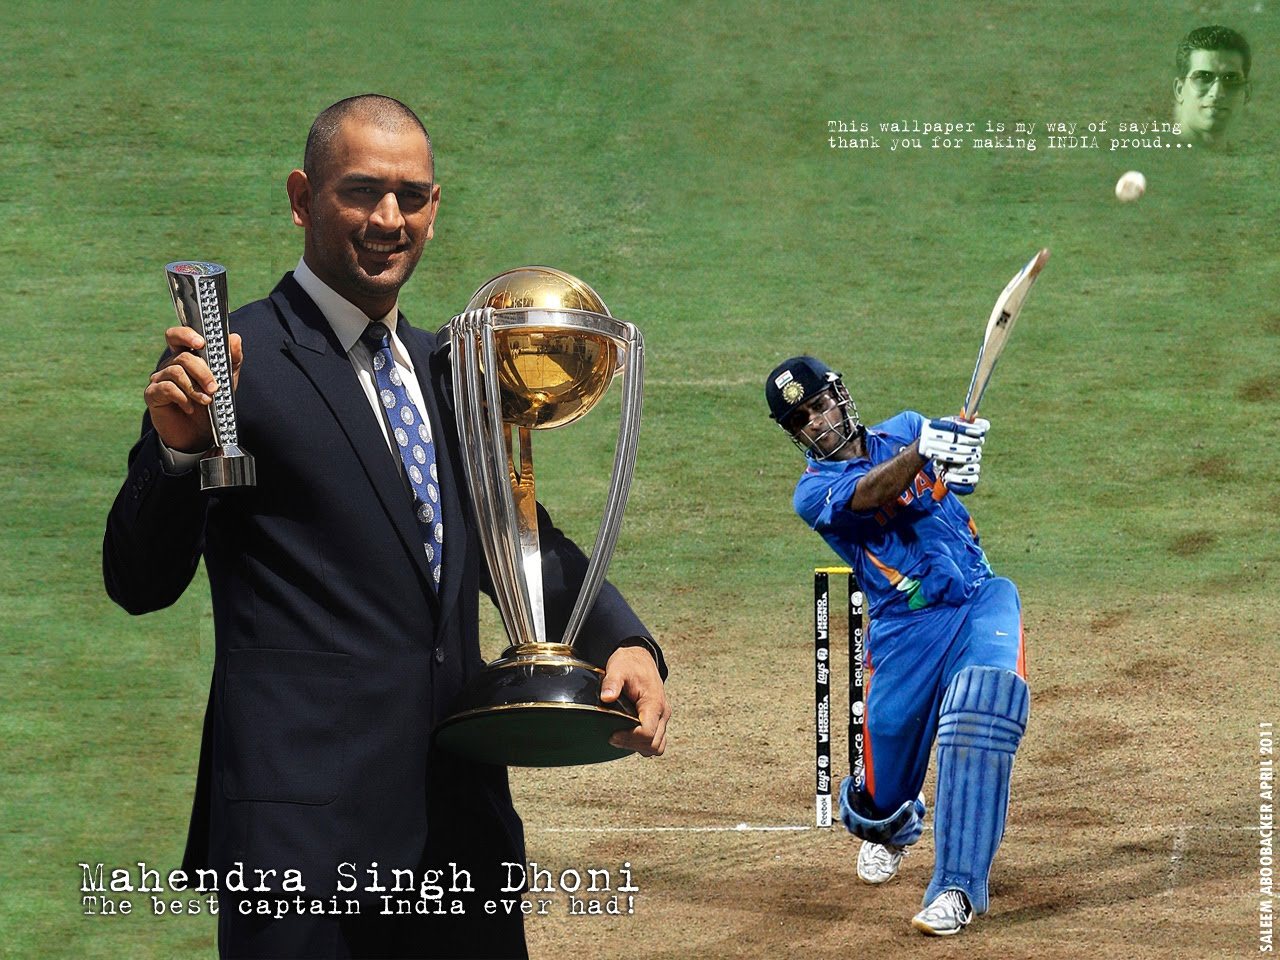 An Essay on Mahendra Singh Dhoni for Students and